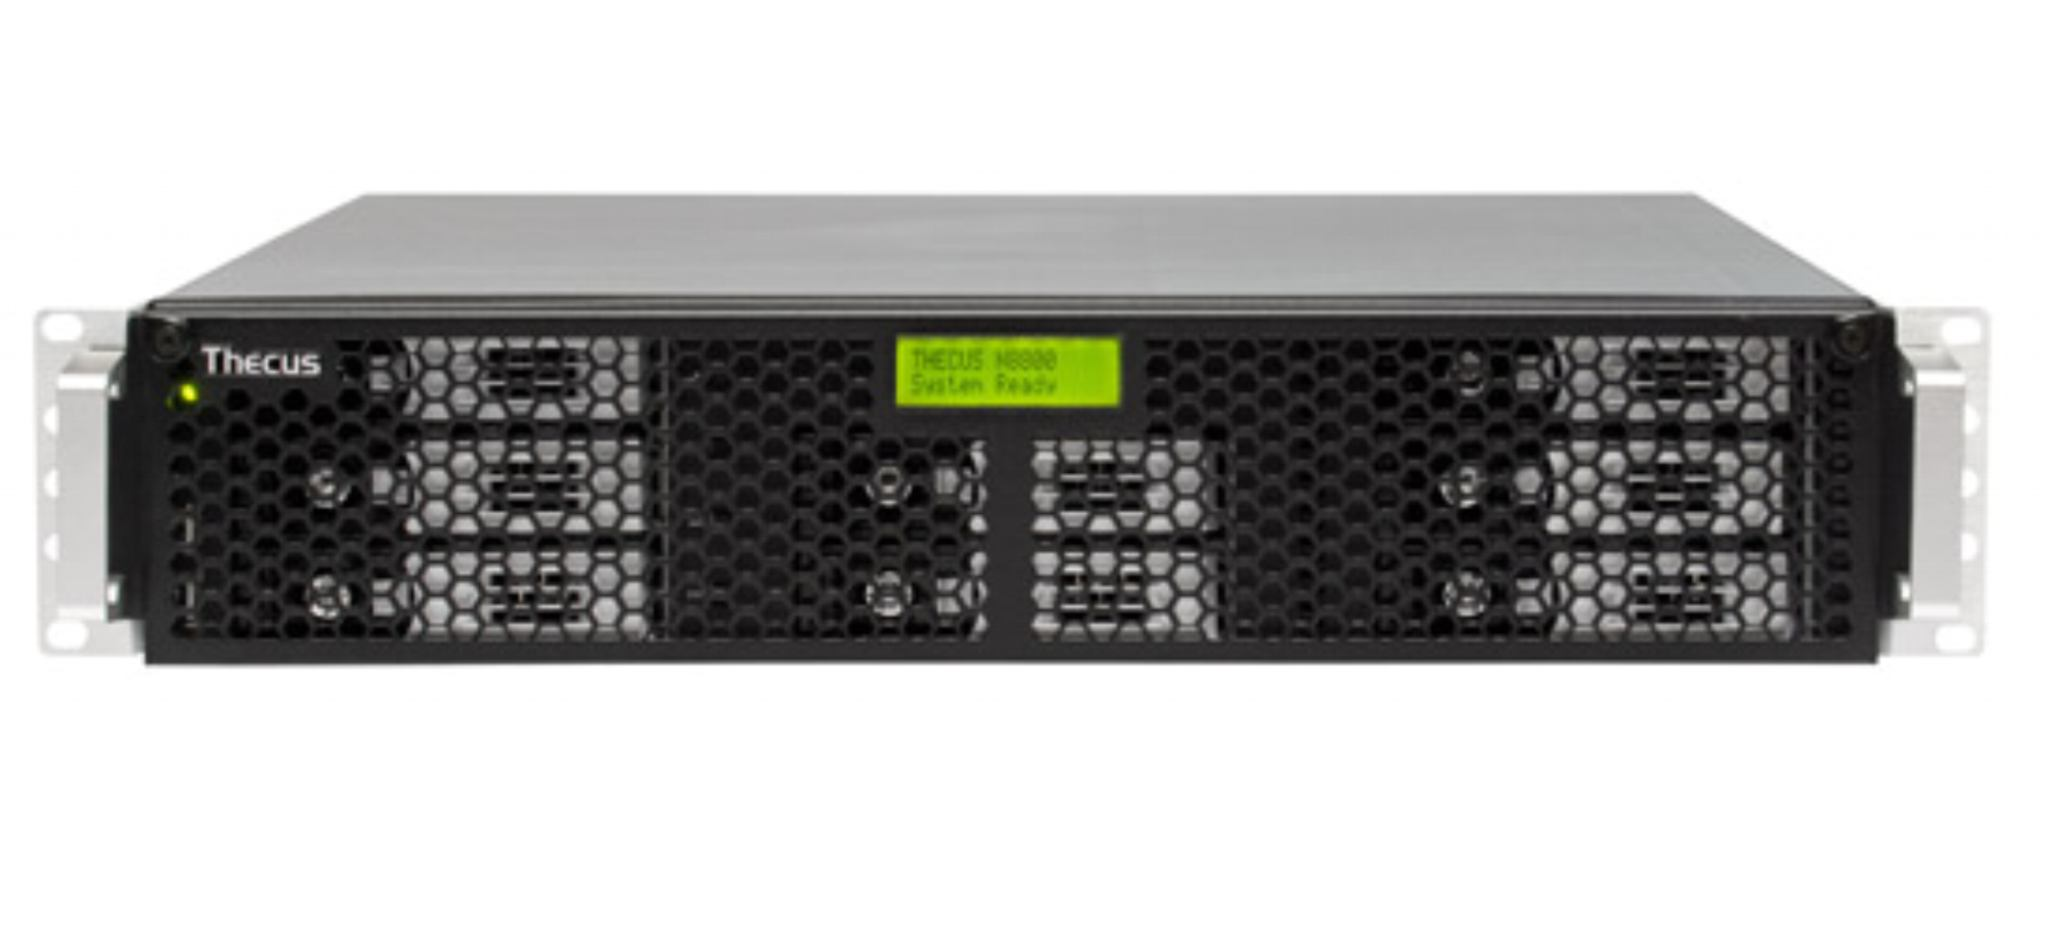 Server SAS Thecus N8800 server SAS Thecus Server SAS Thecus N8800 BASE UNIT Thecus N8800